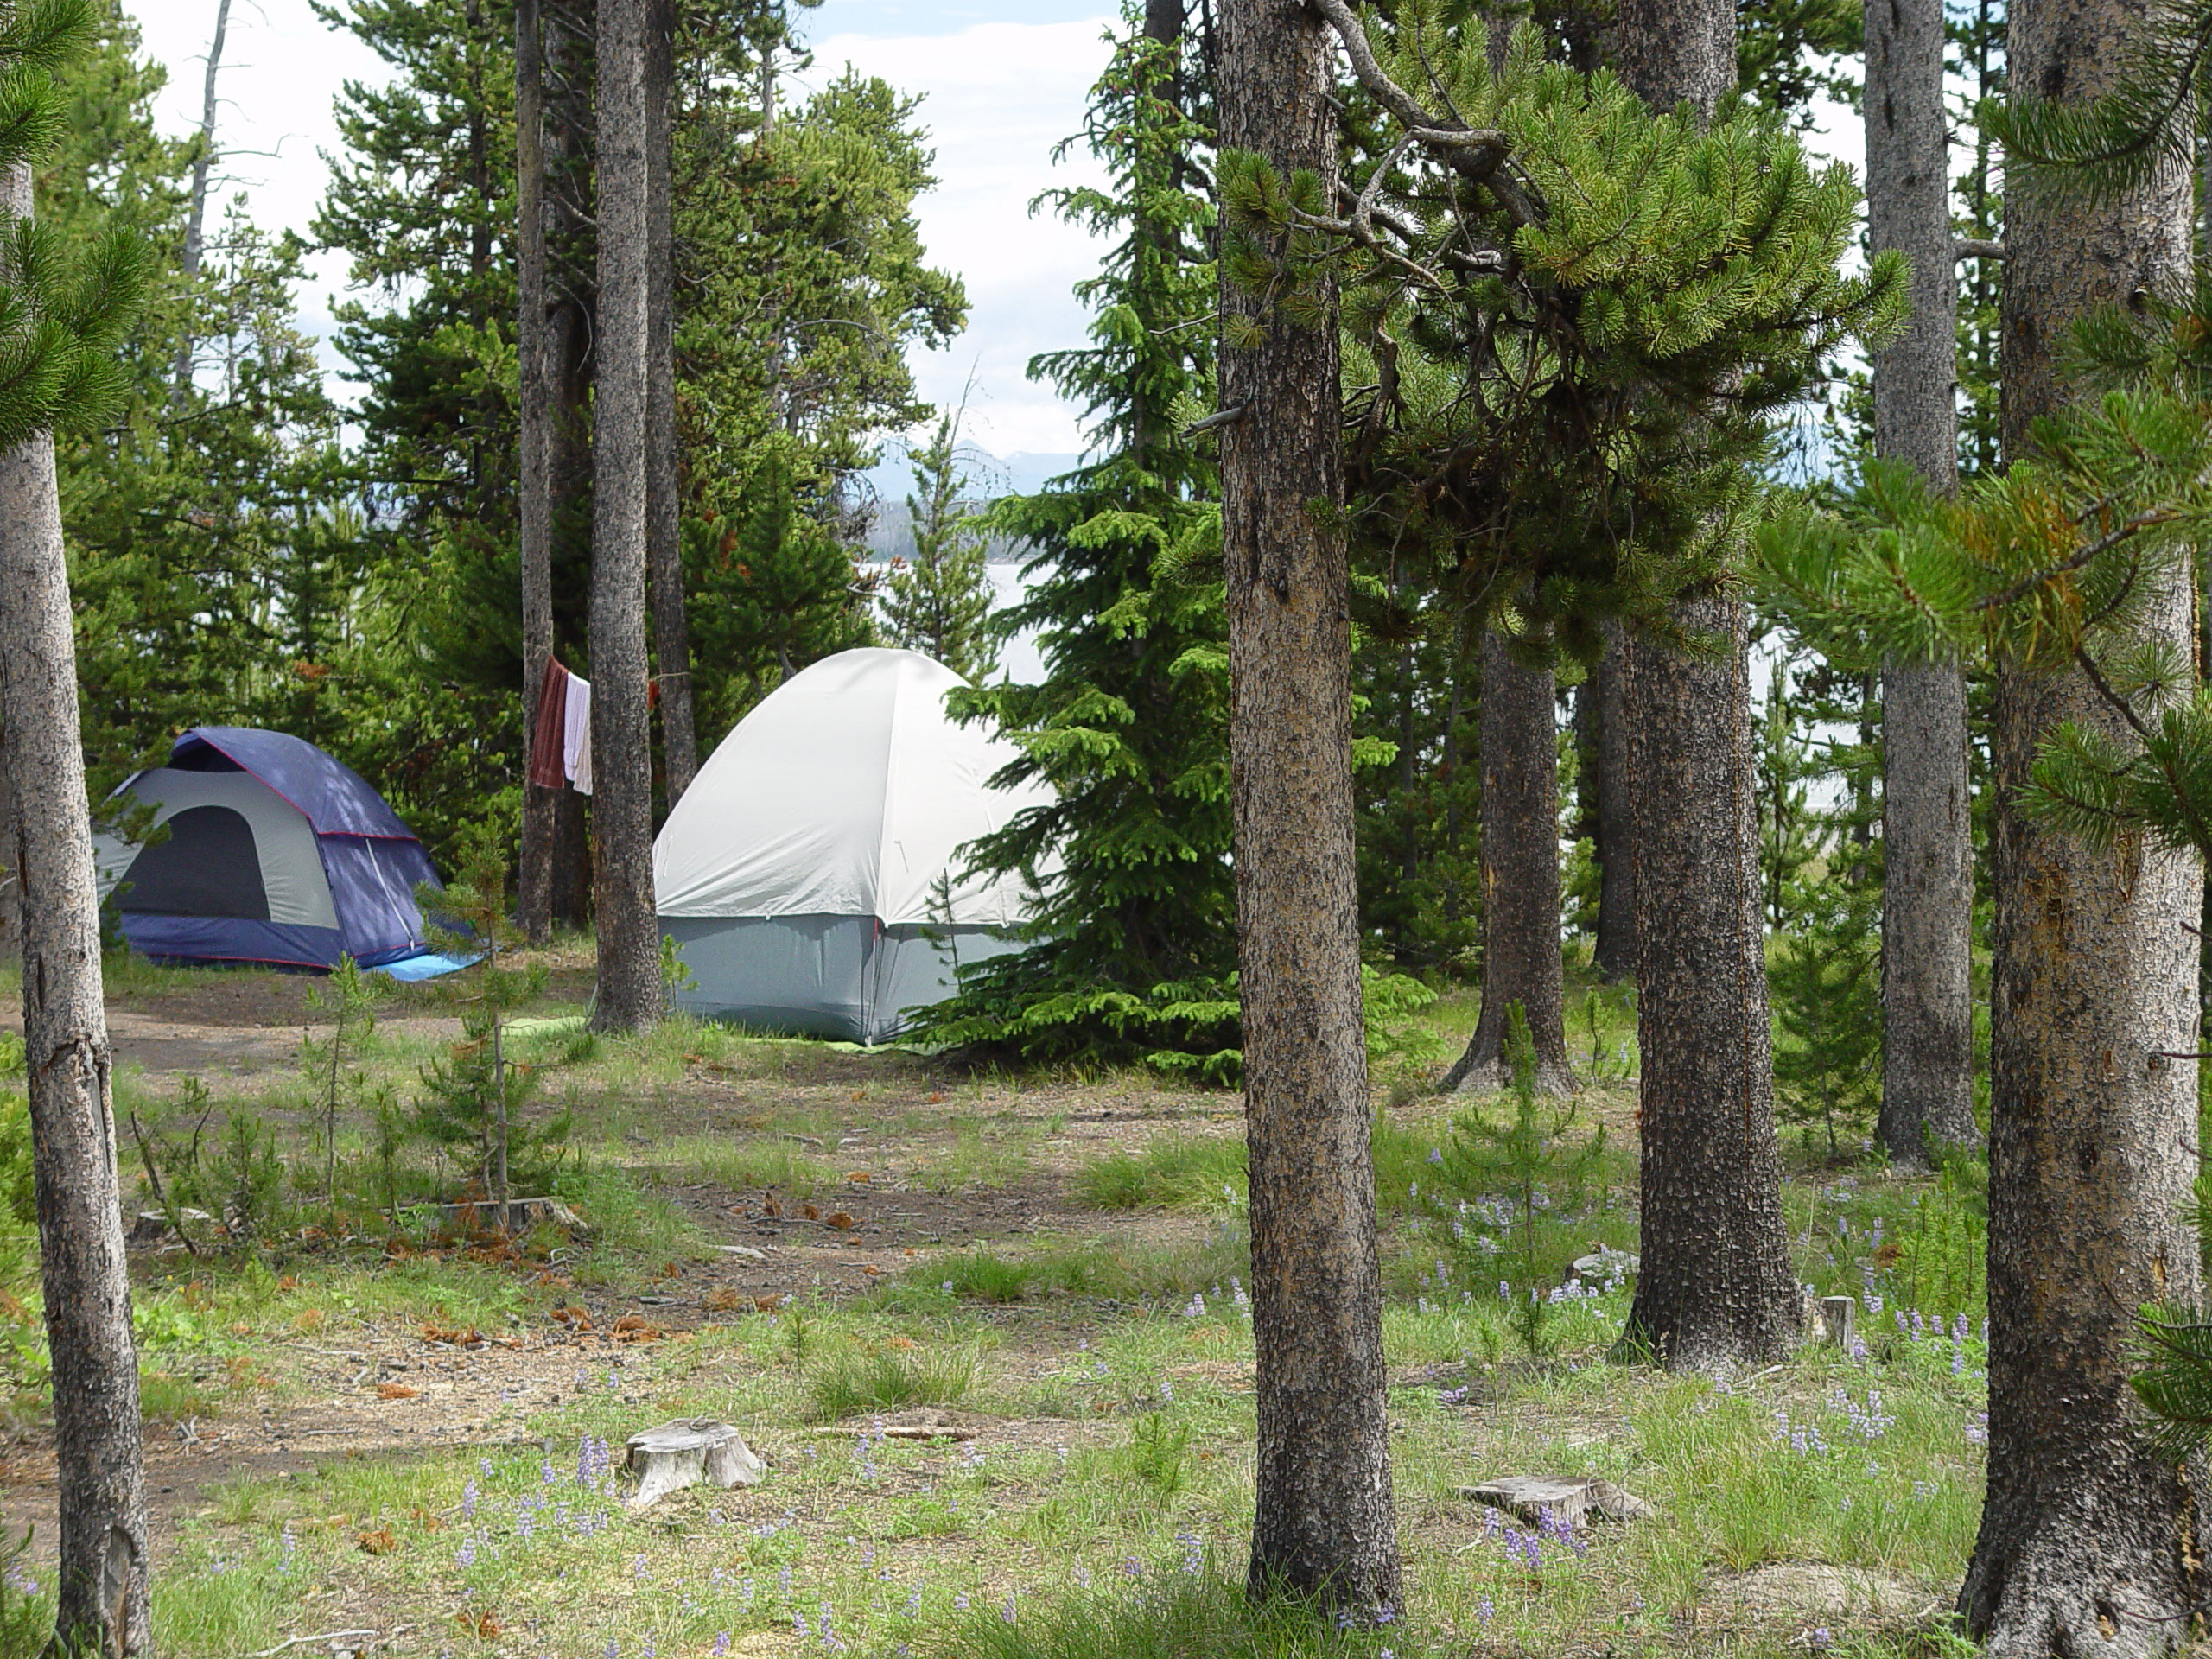 Lodging, dining, and camping